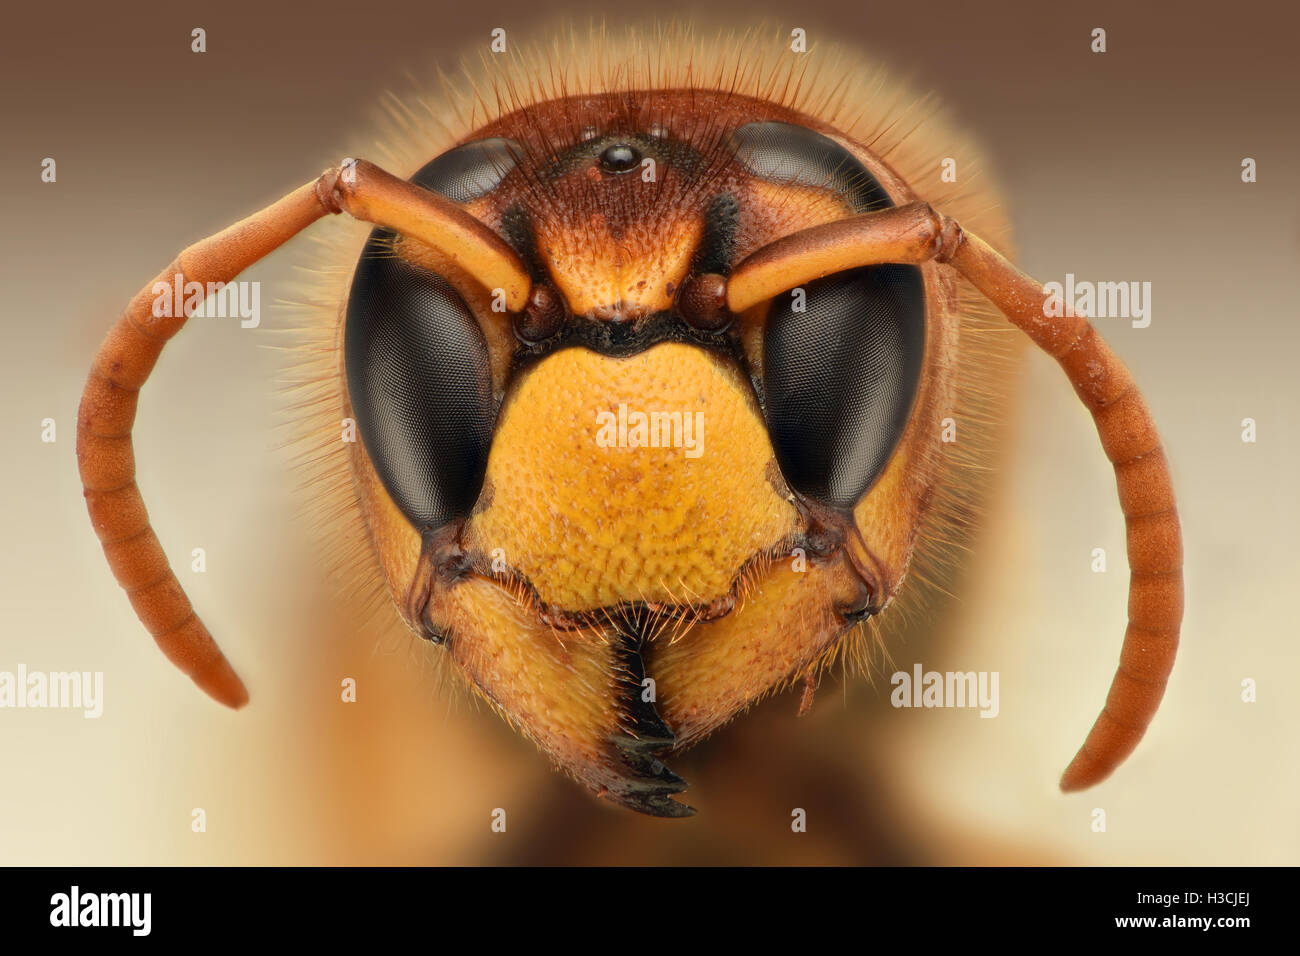 Extreme sharp closeup of wasp head - Stock Image